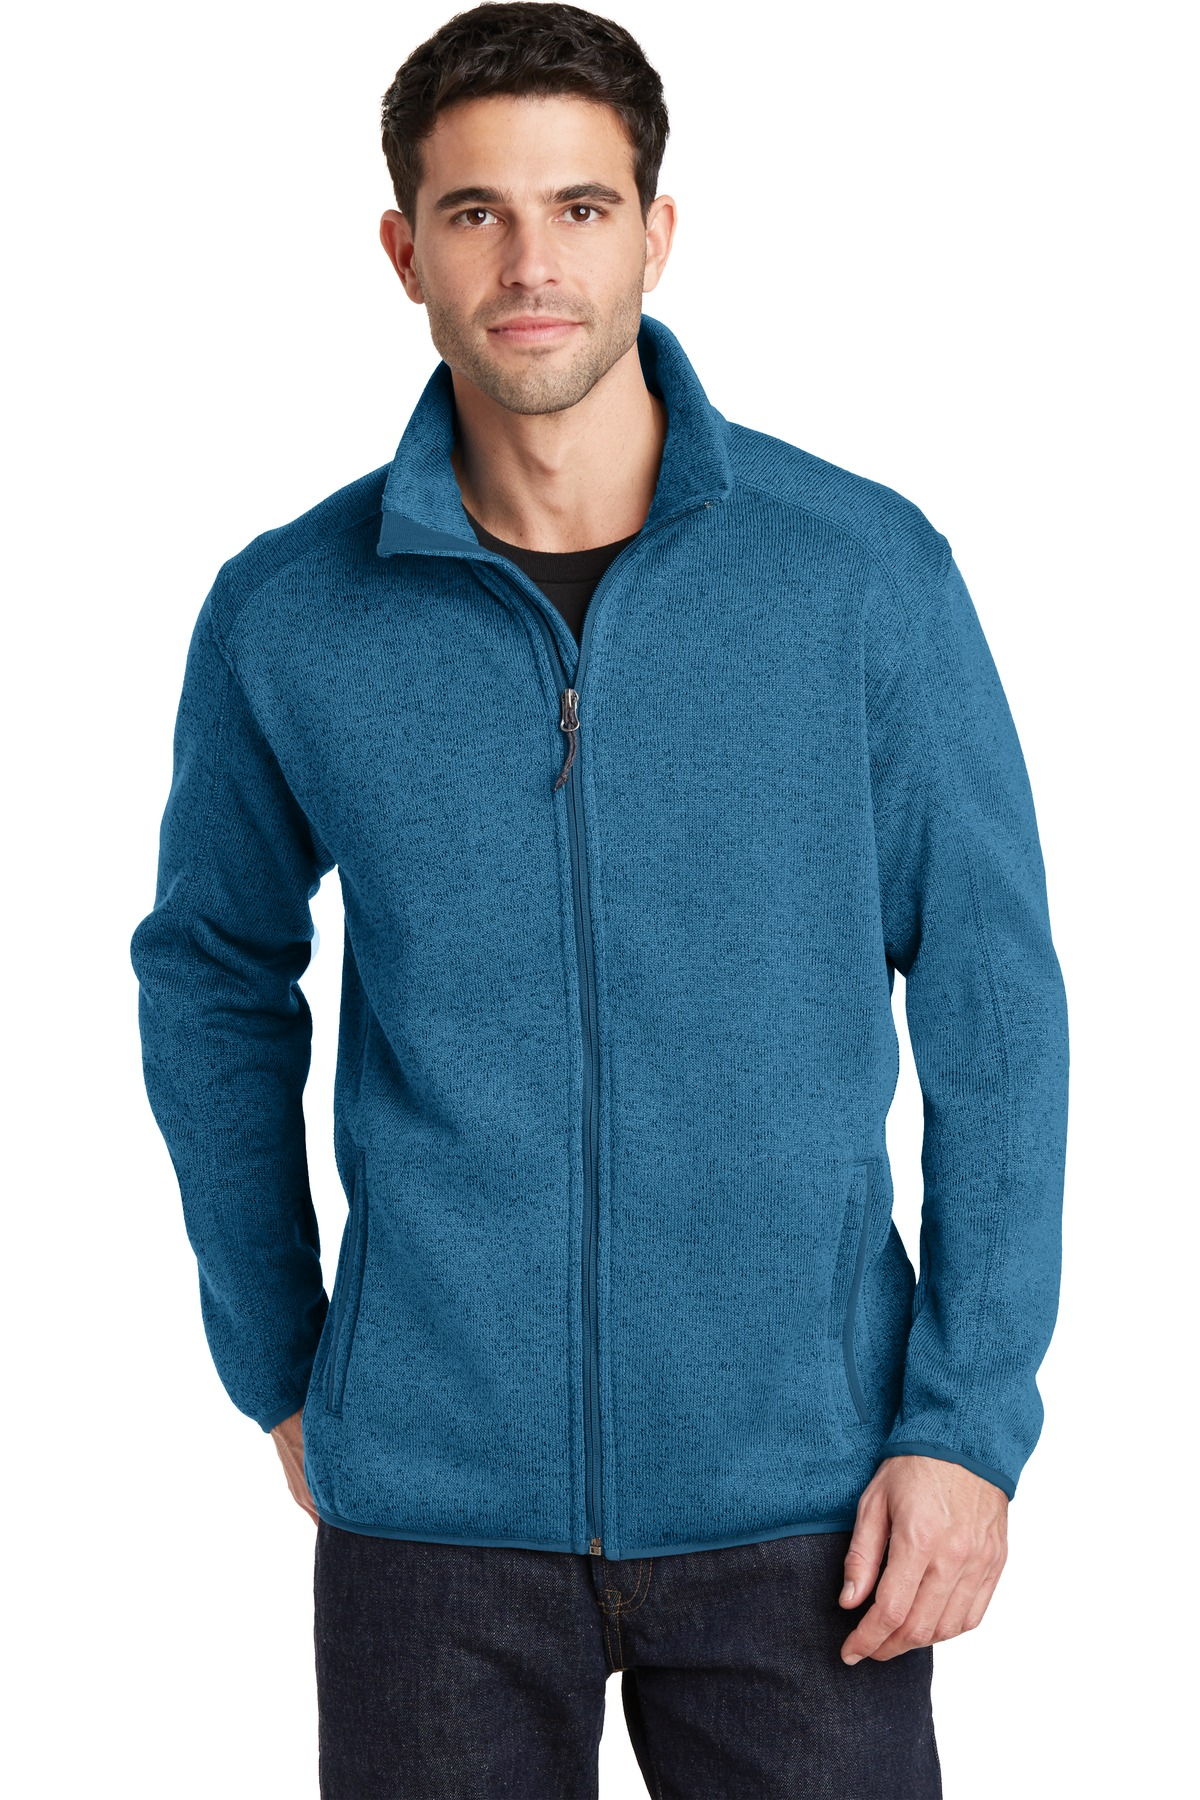 click to view Medium Blue Heather